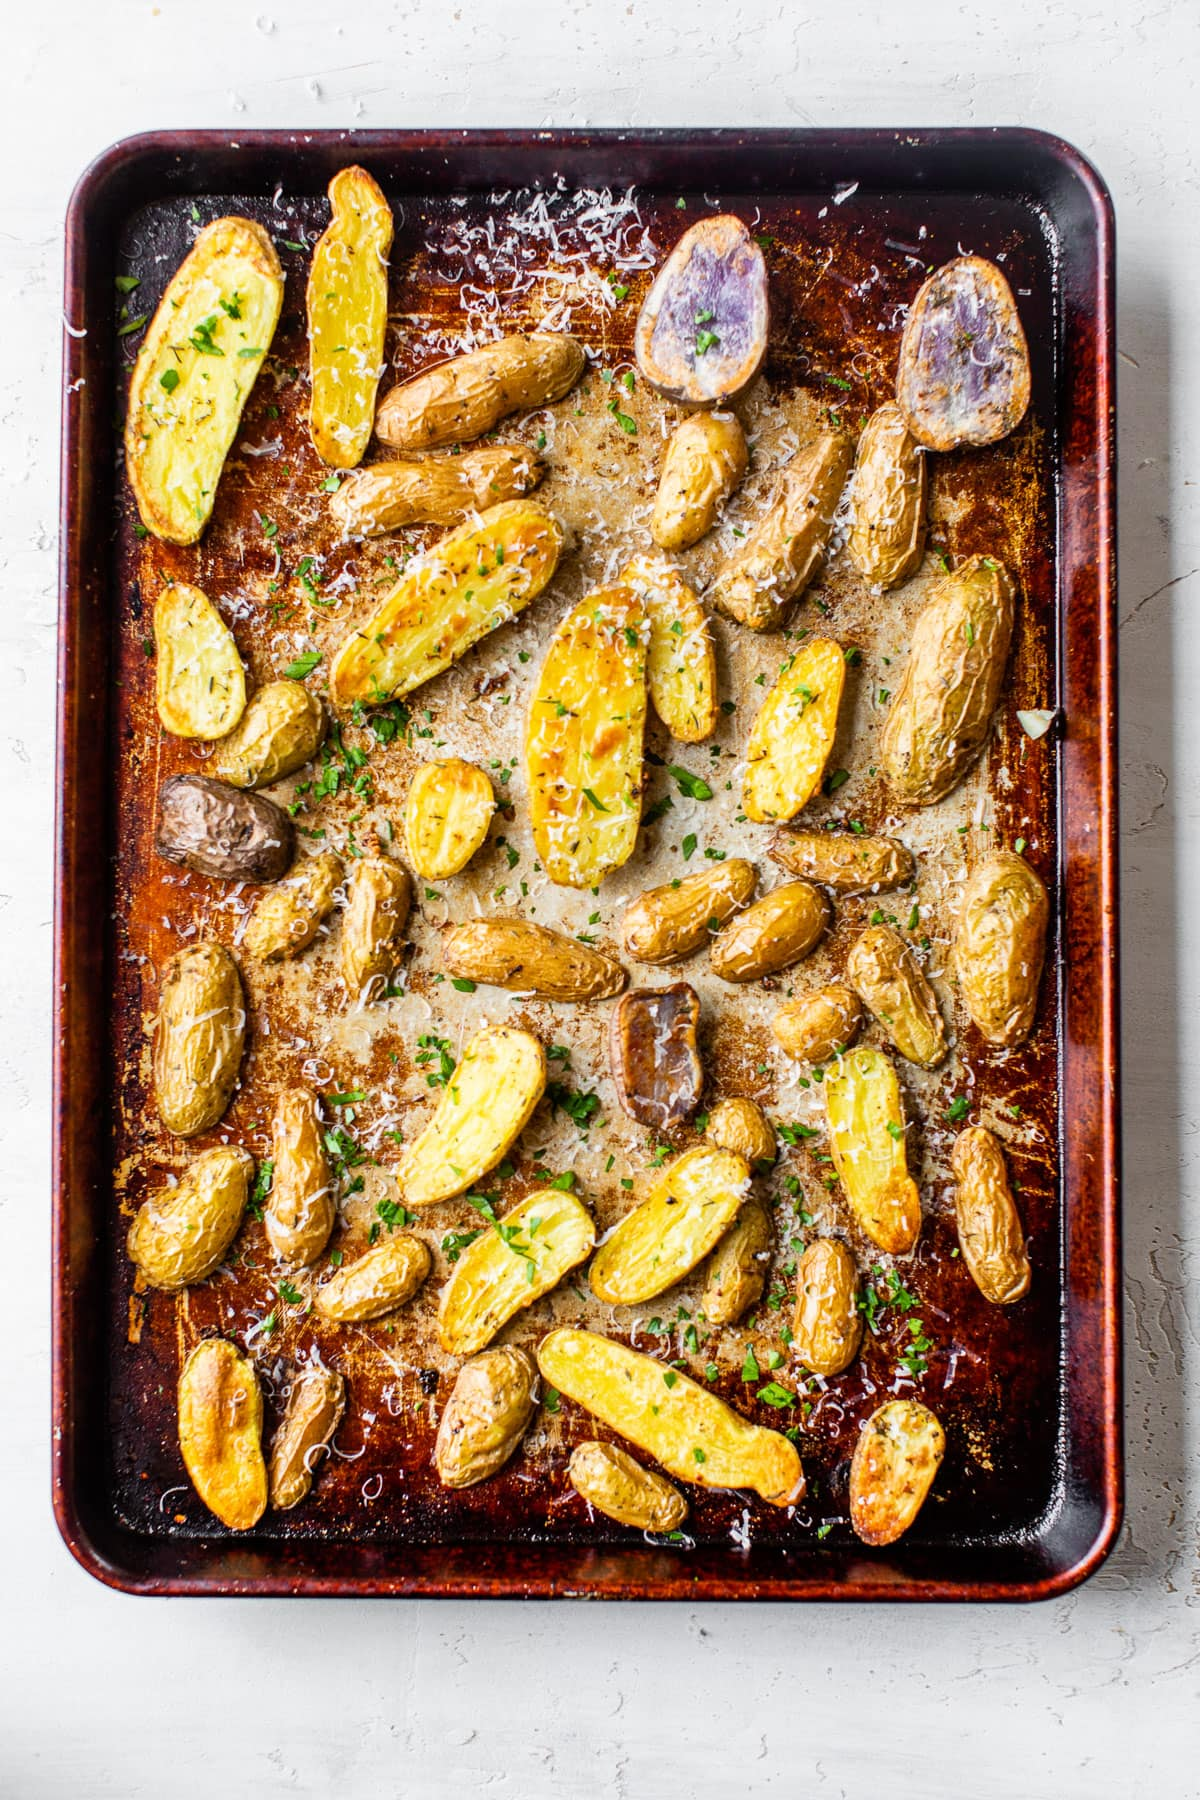 Roasted fingerling potatoes on a baking sheet